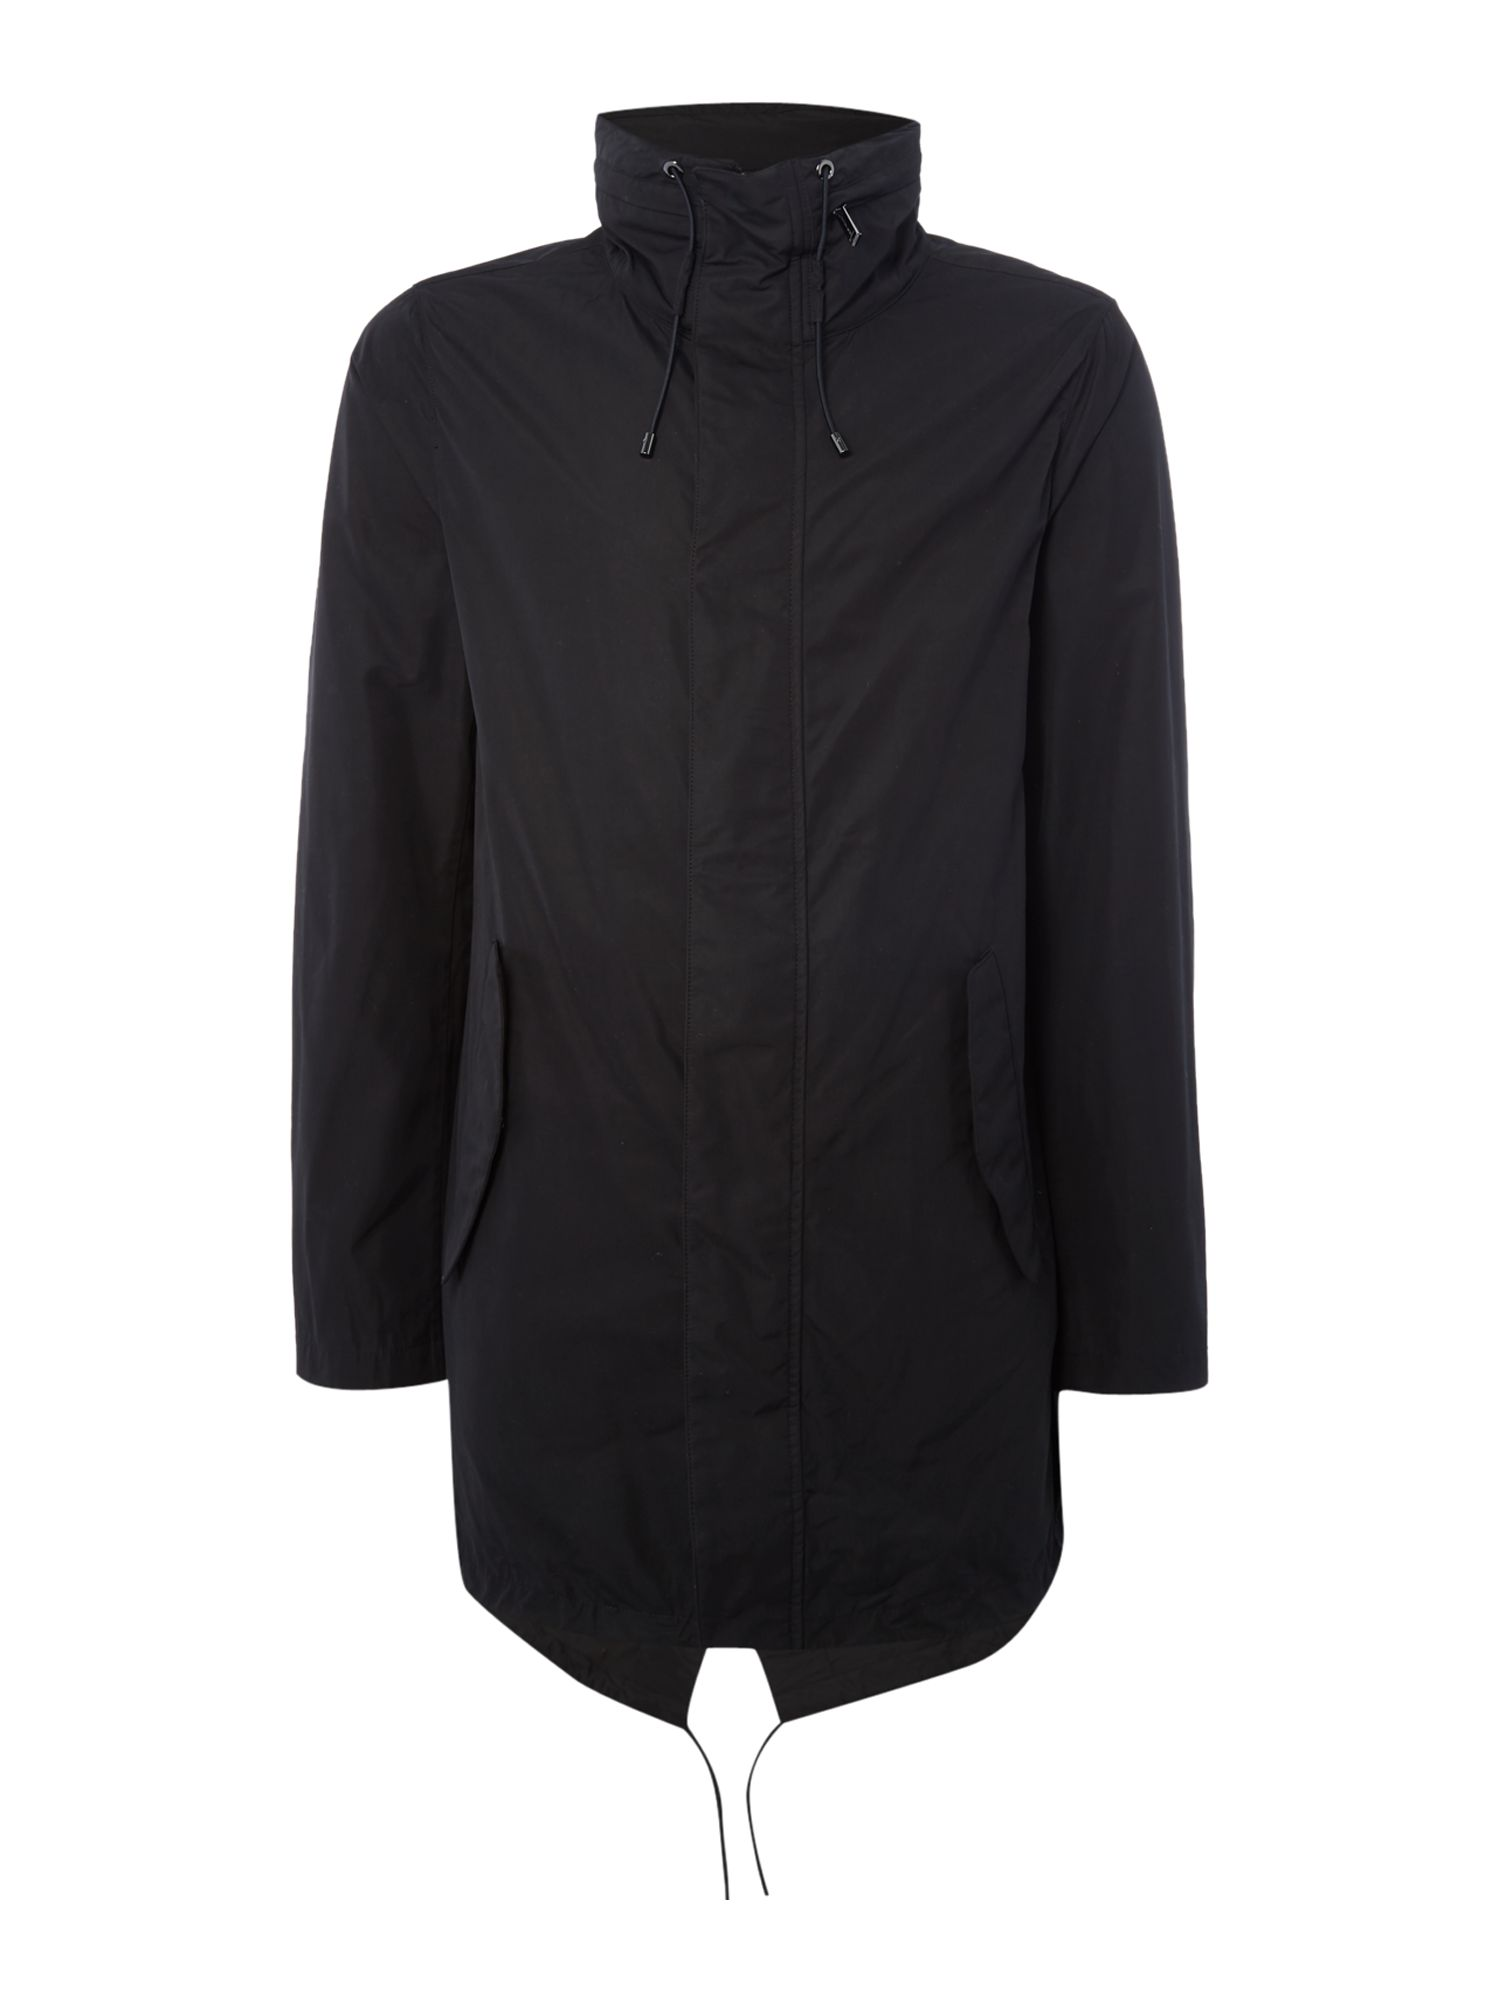 Mens Michael Kors Funnel neck showerproof anorak Black